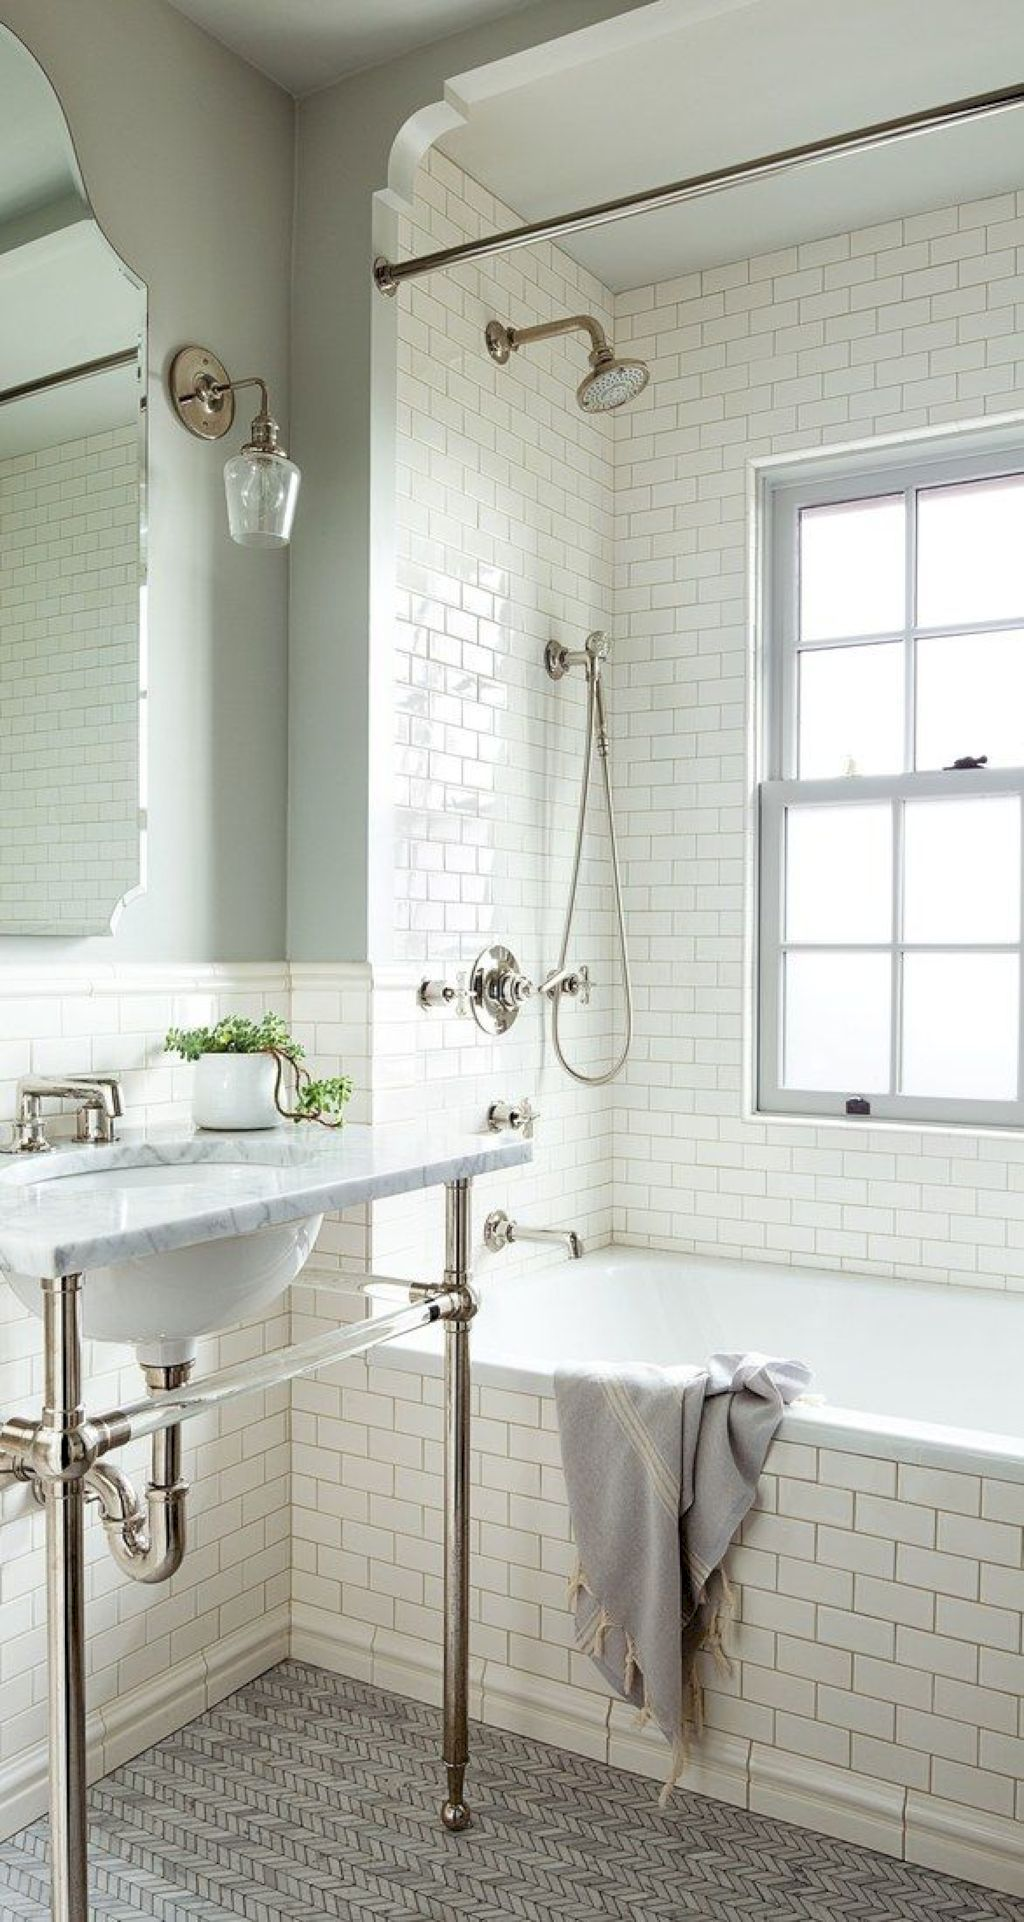 Awesome 50 Awesome Master Bathroom Remodel Ideas